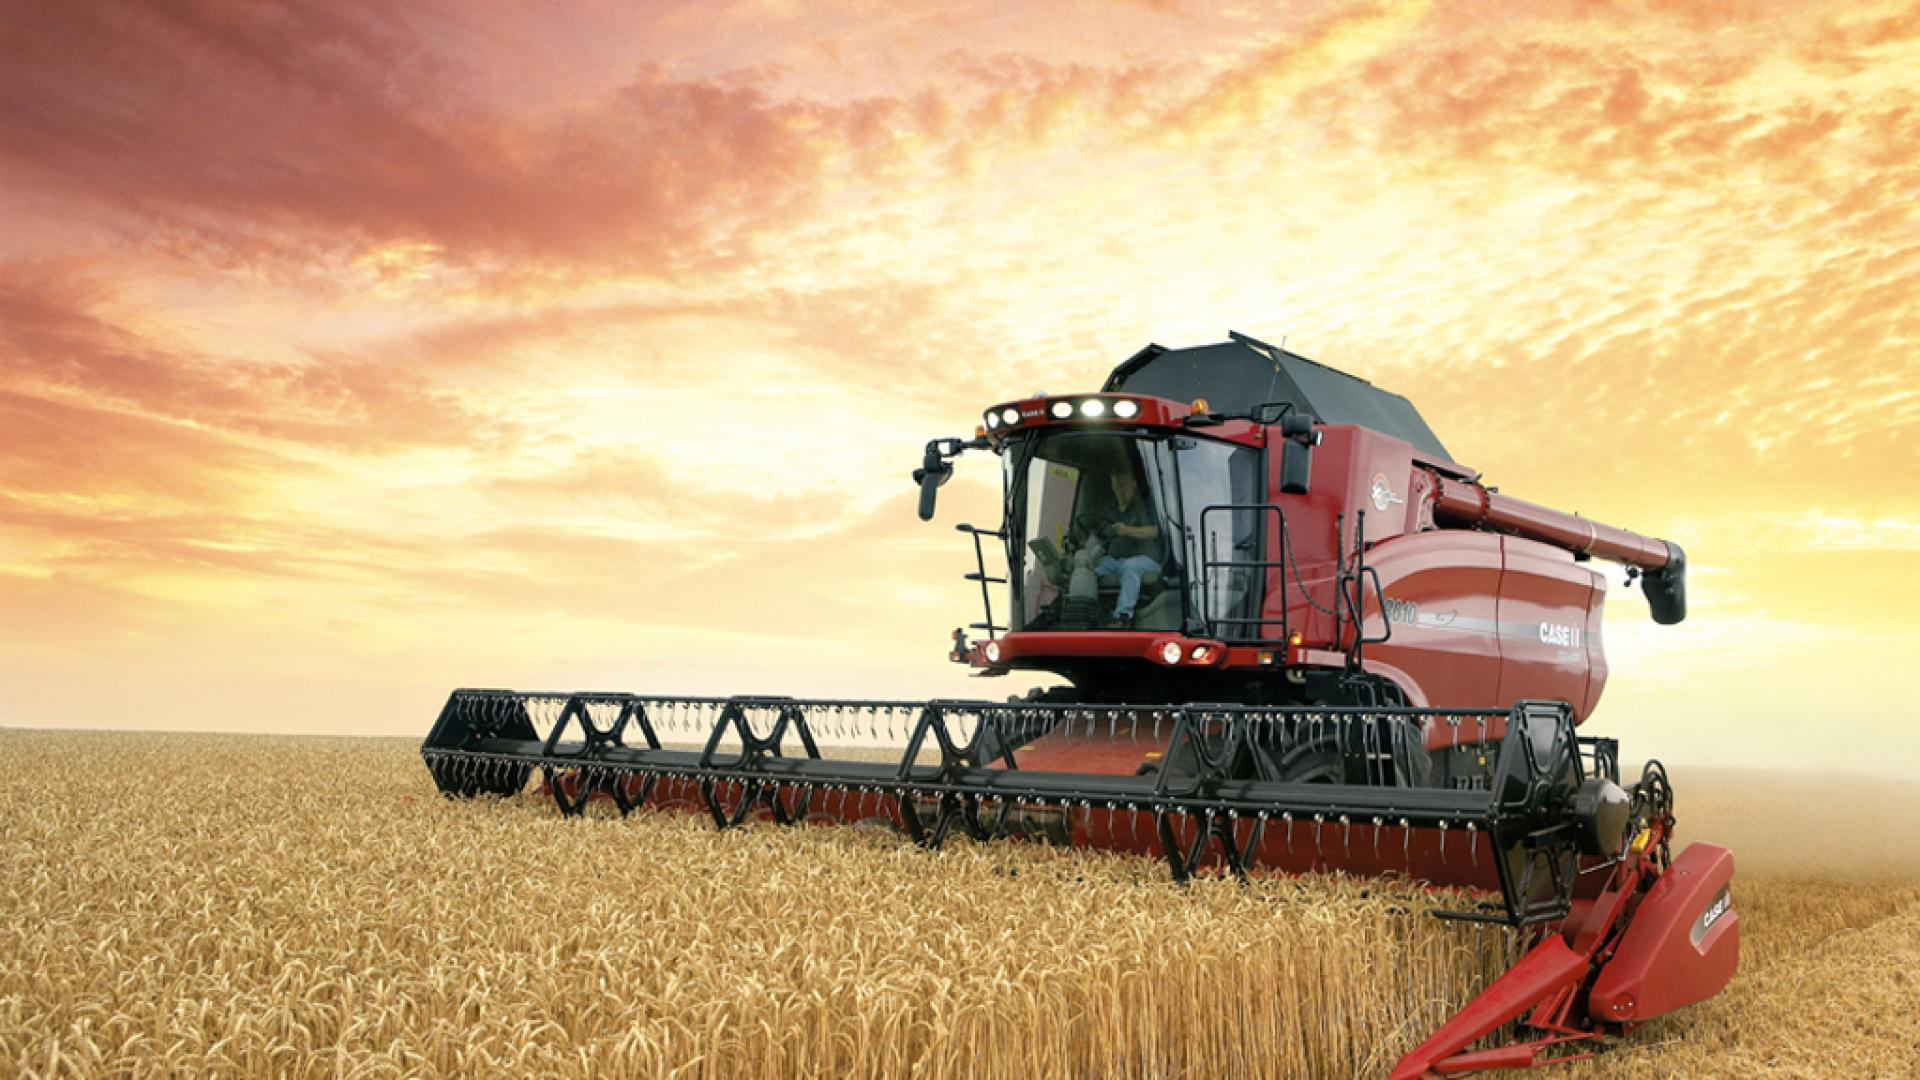 download Farming Backgrounds Download [1920x1080] for your 1920x1080